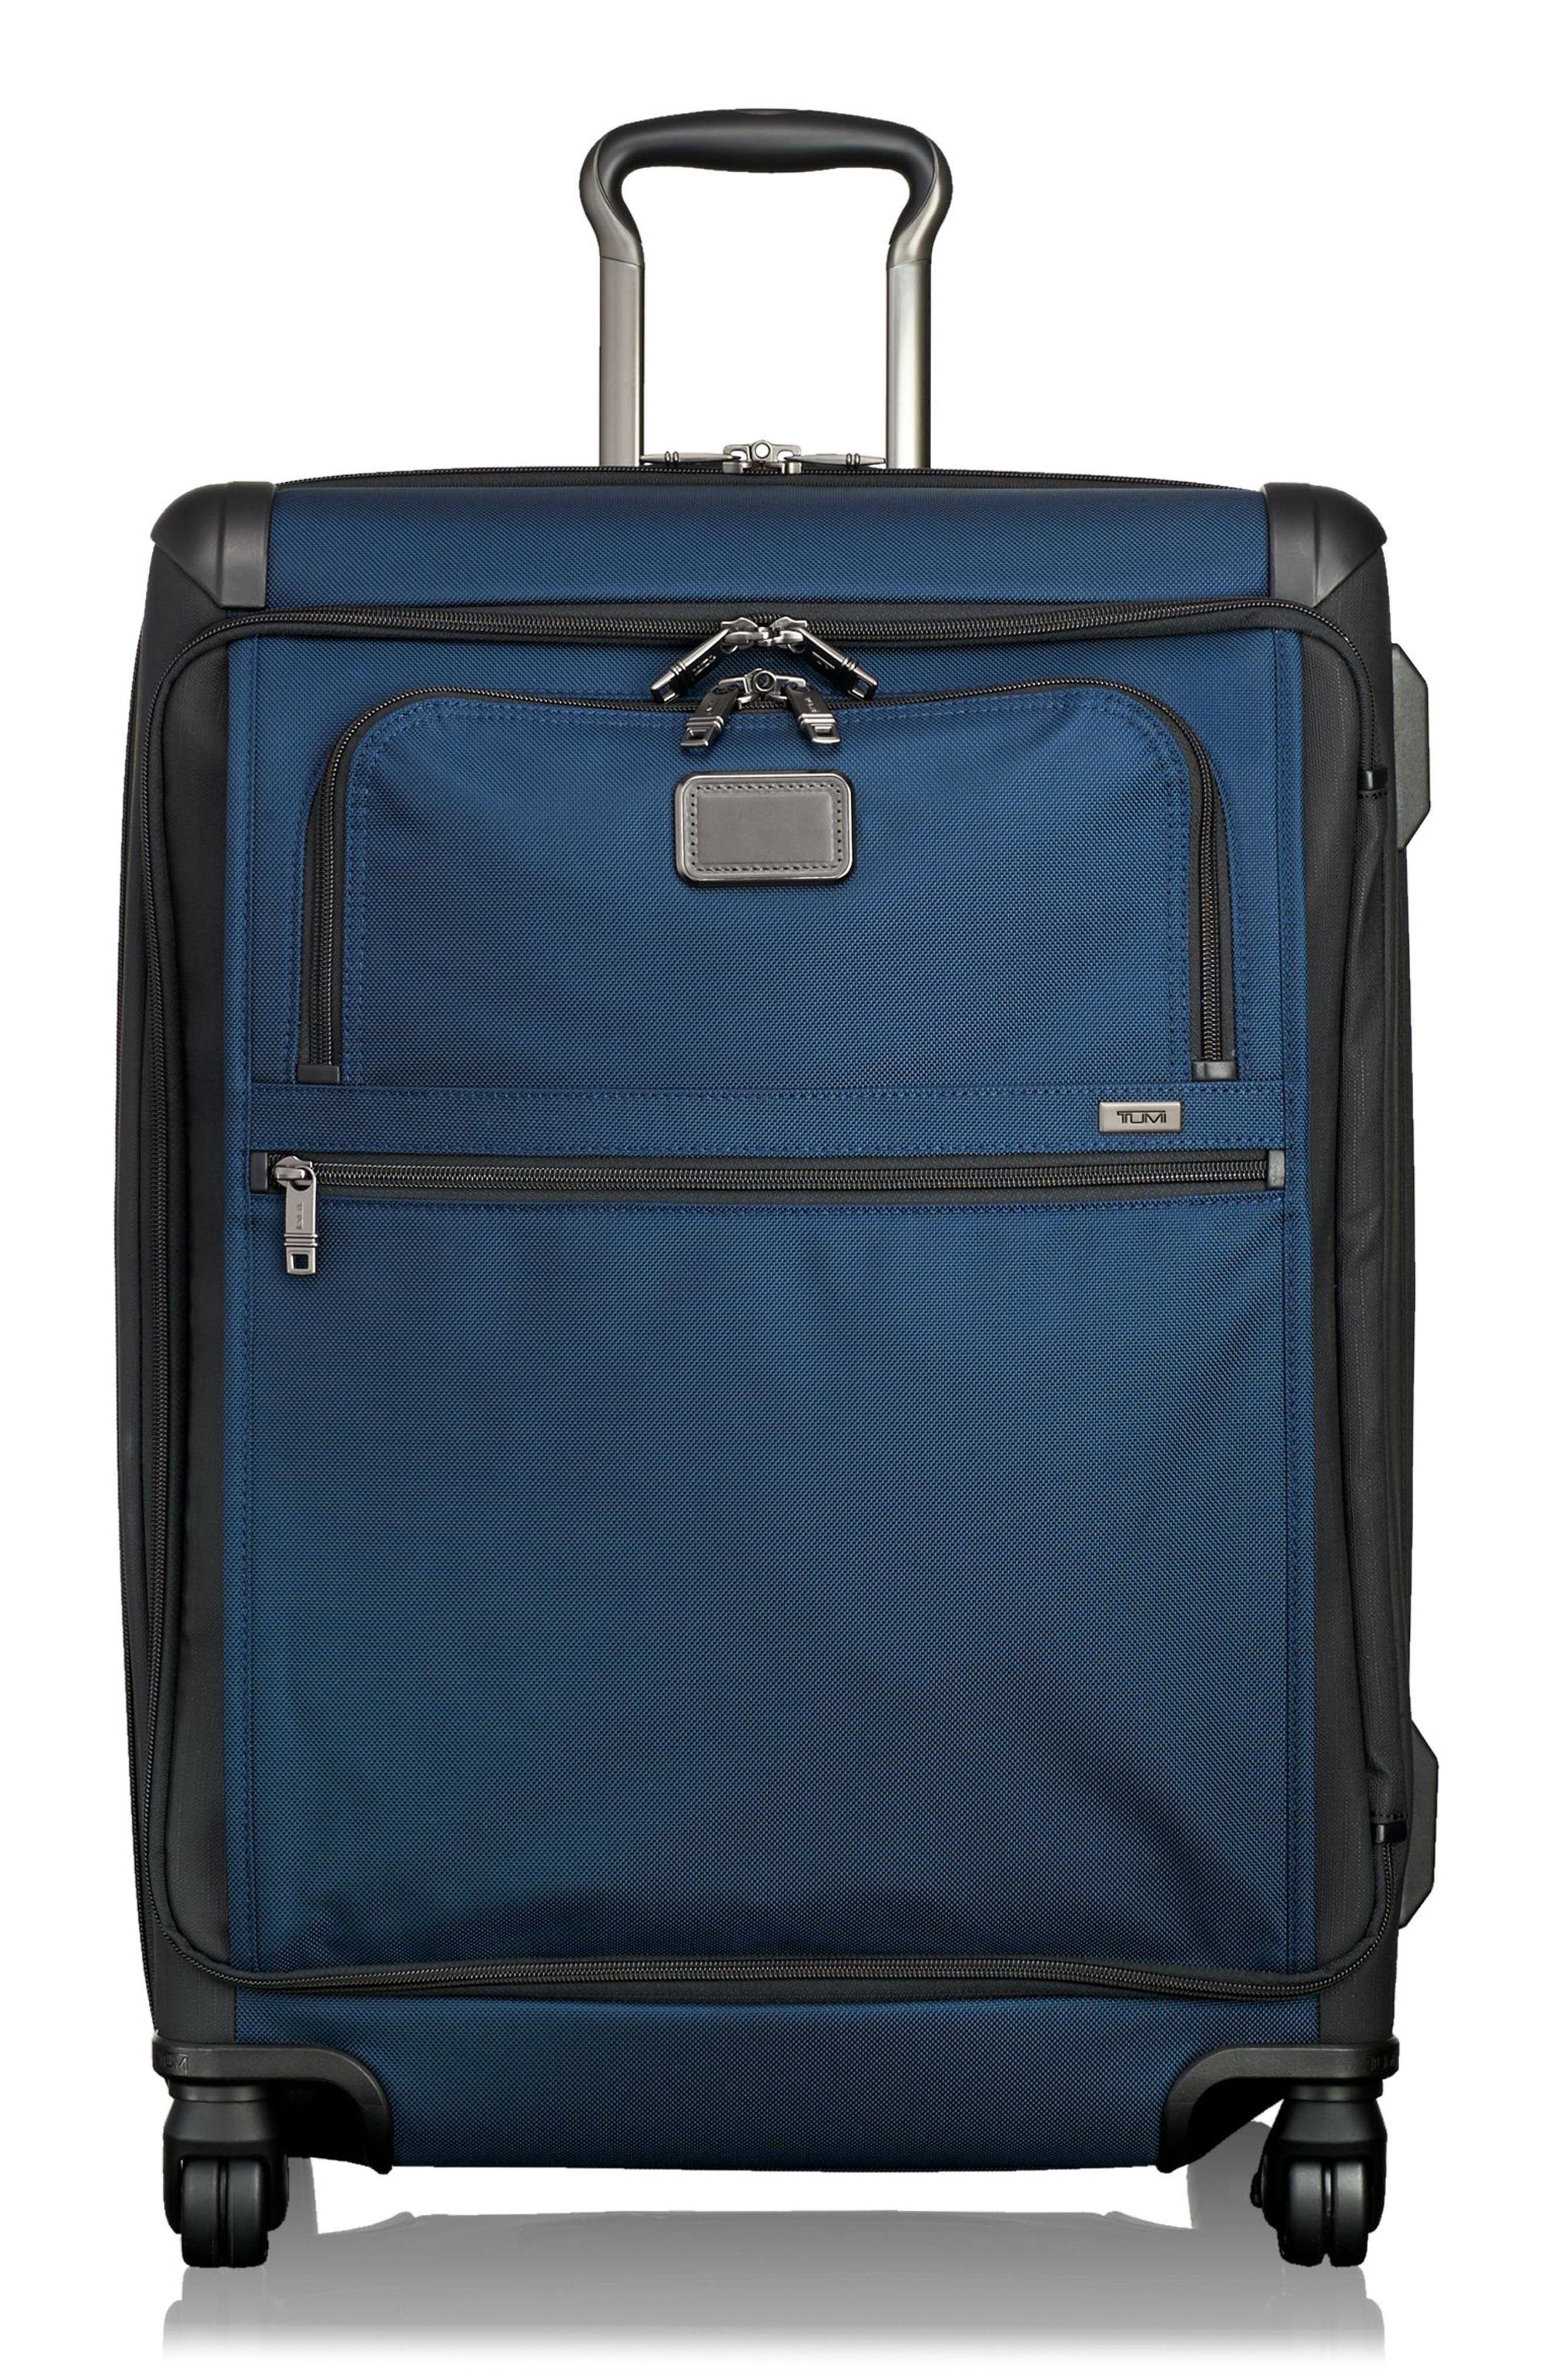 Tumi Alpha 2 Short Trip 26-Inch Four-Wheel Packing Case